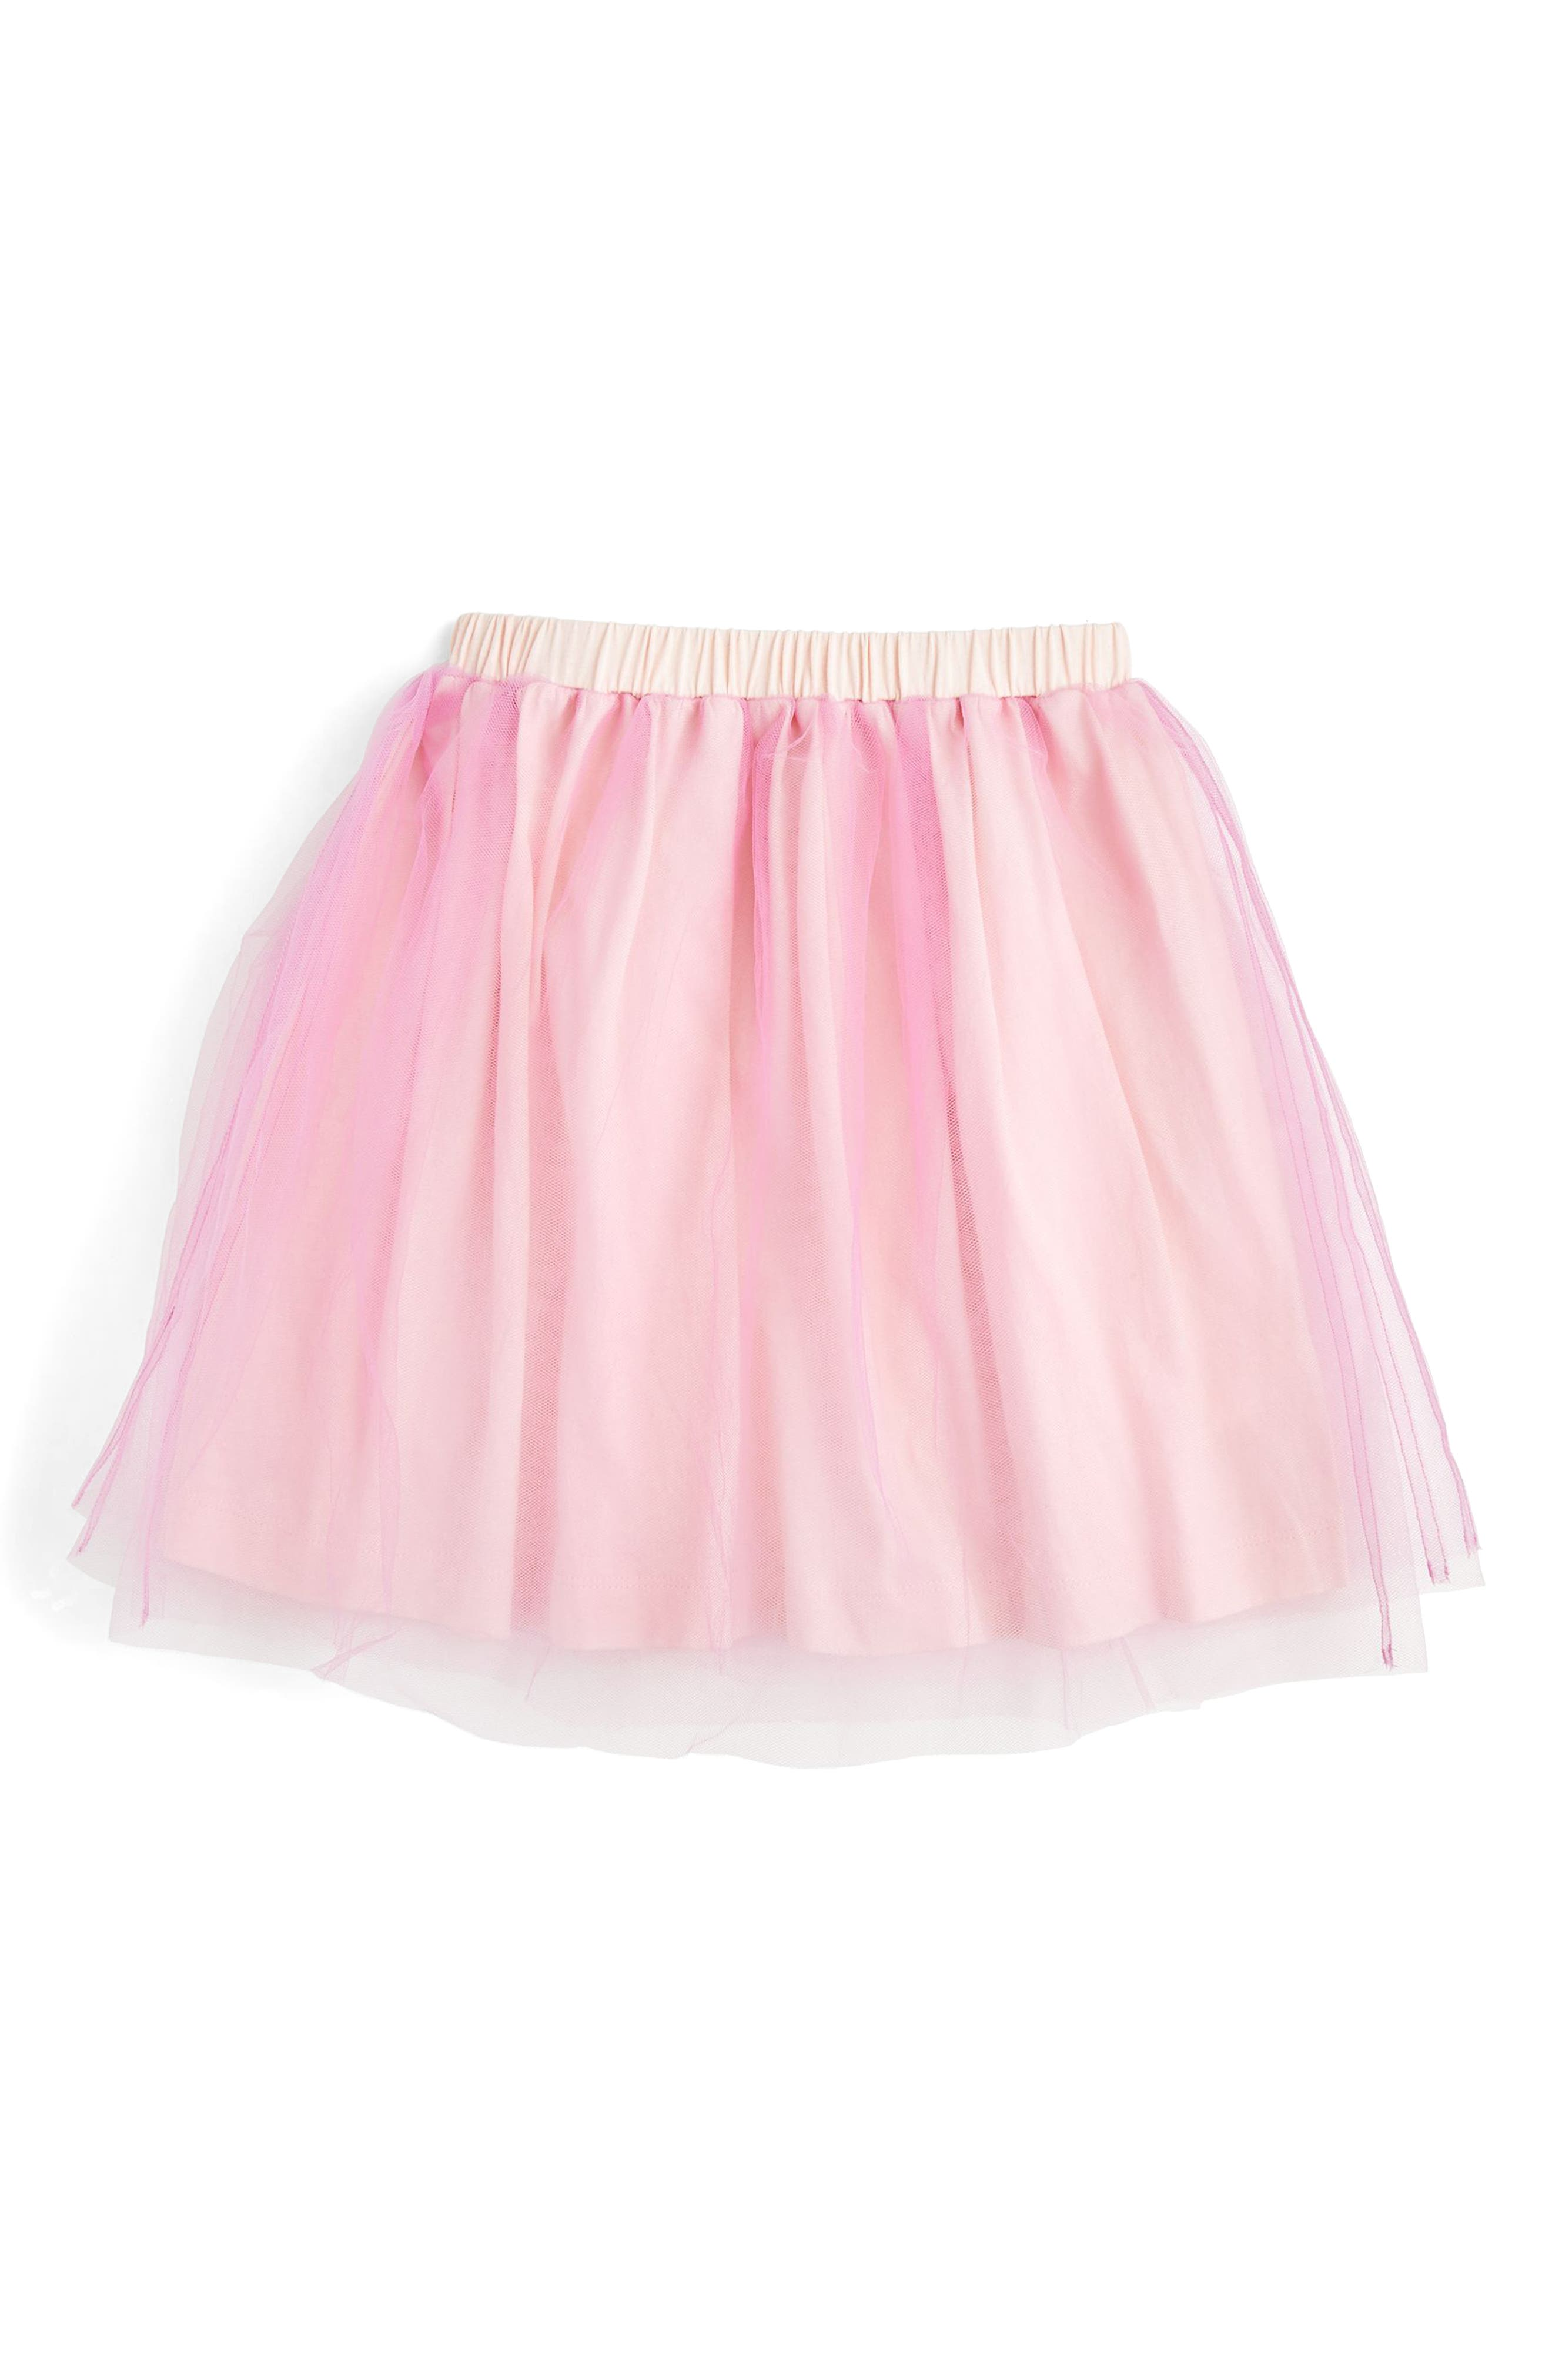 Tulle Skirt,                             Main thumbnail 1, color,                             Orchid Pink